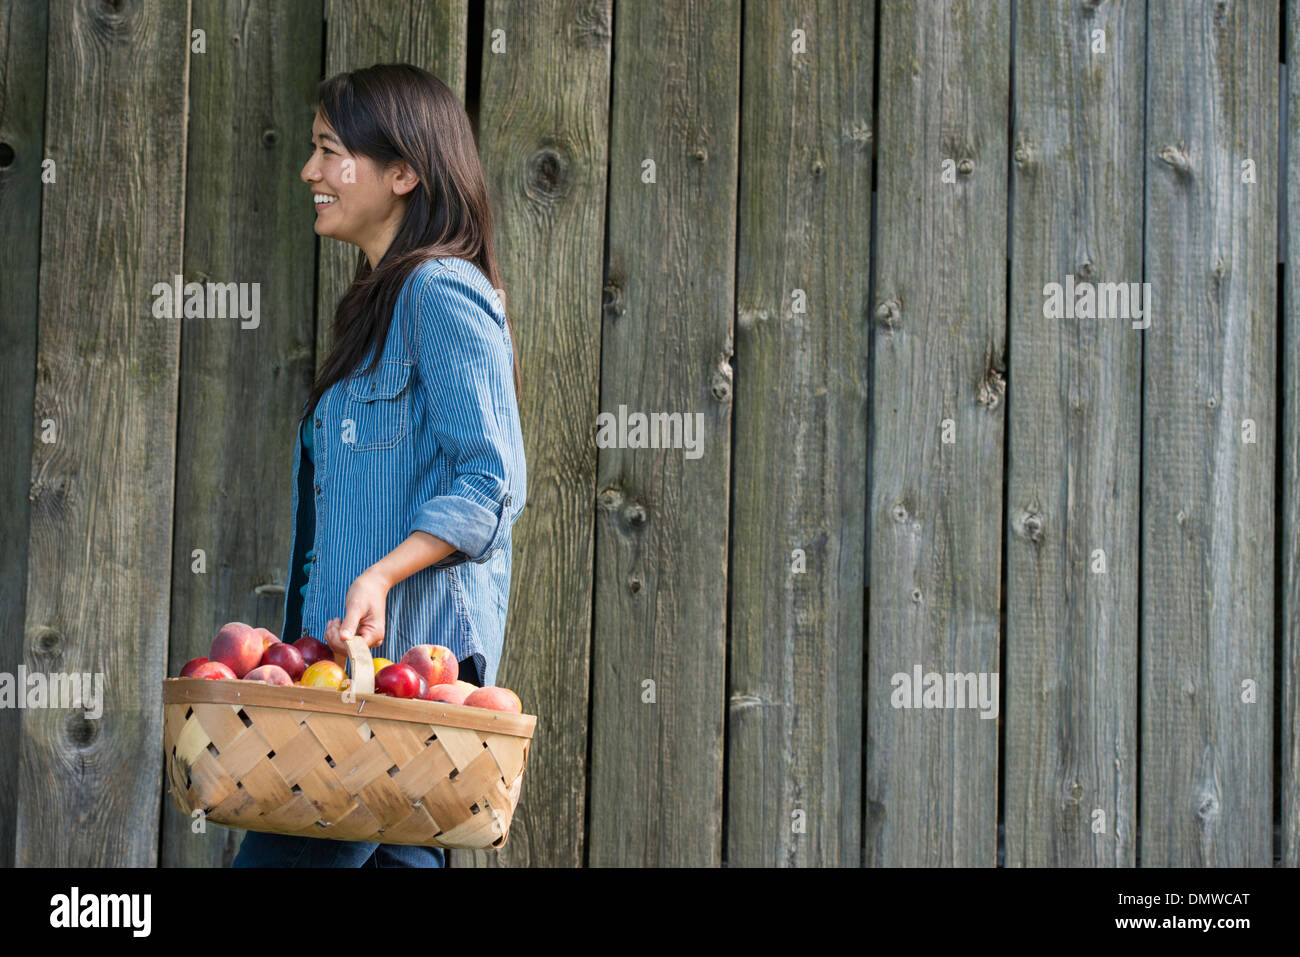 A woman carrying a basket of freshly picked fruit. Plums and peaches. - Stock Image